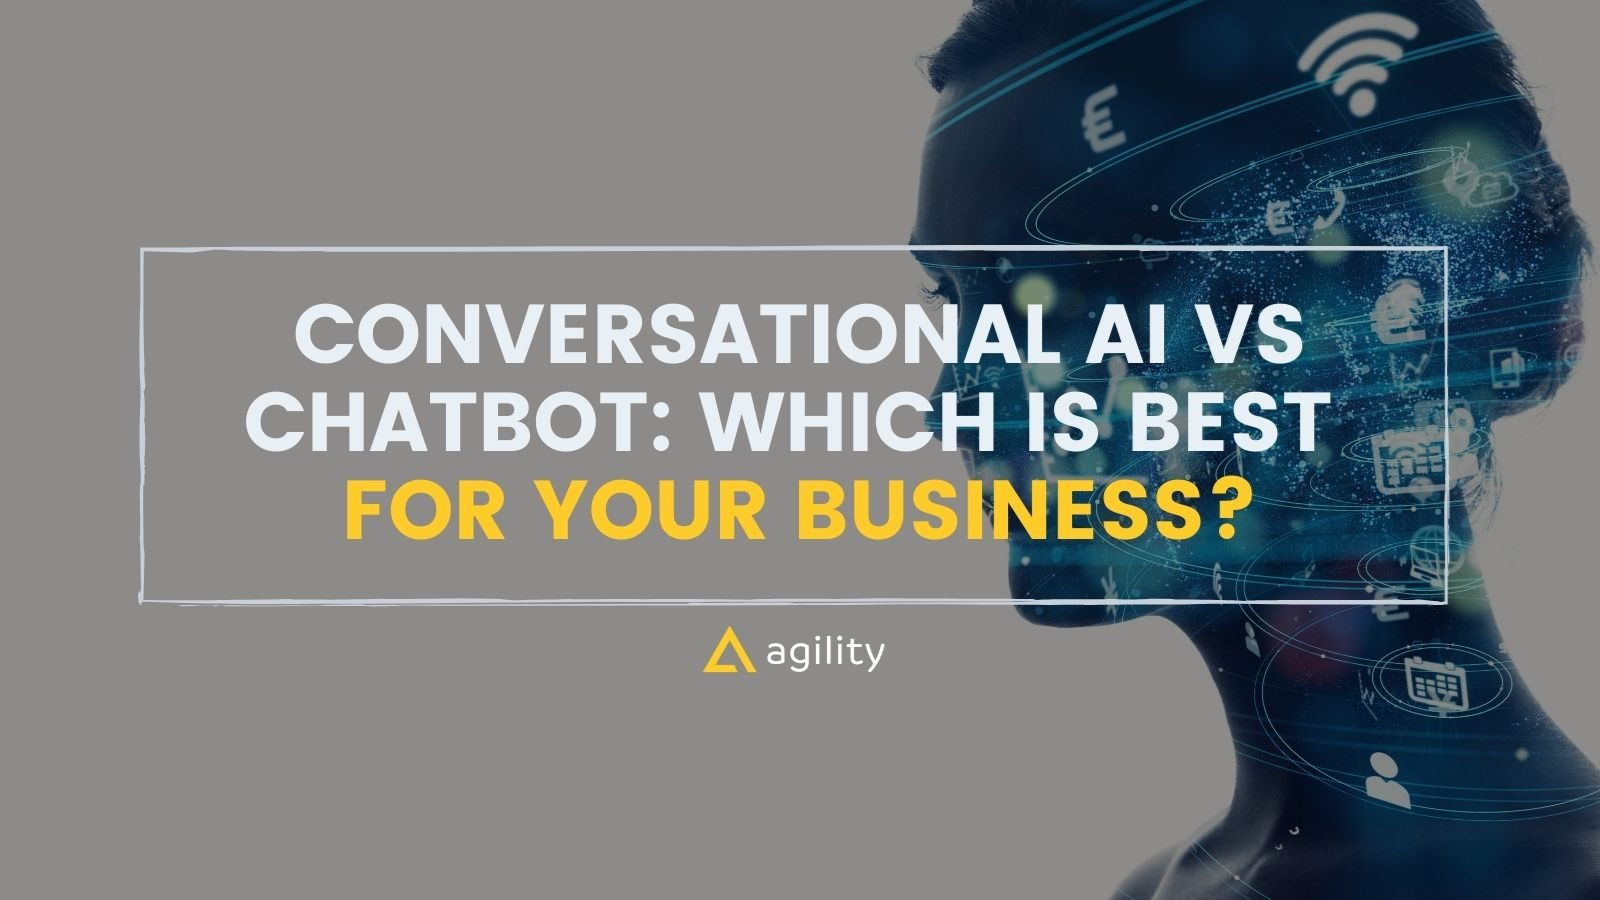 Conversational AI vs Chatbot: Which Is Best For Your Business?